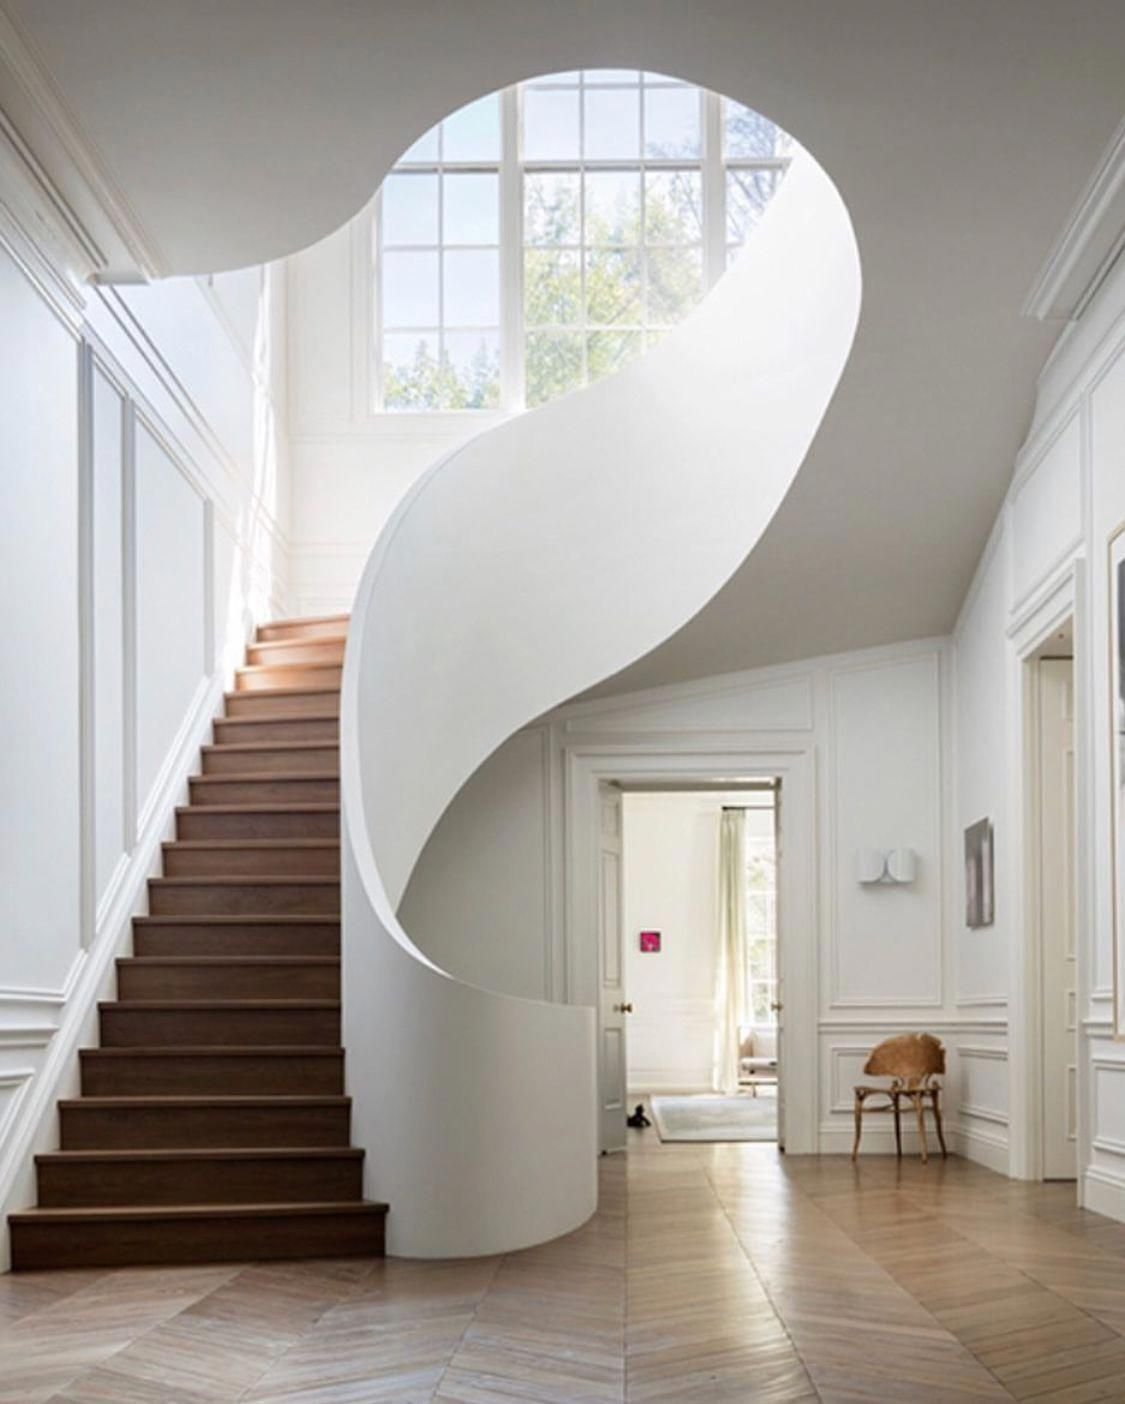 Fluid Architectural Design In Stairwell Boutiqueinteriordesign Stairs Design Staircase Design Stairs Architecture